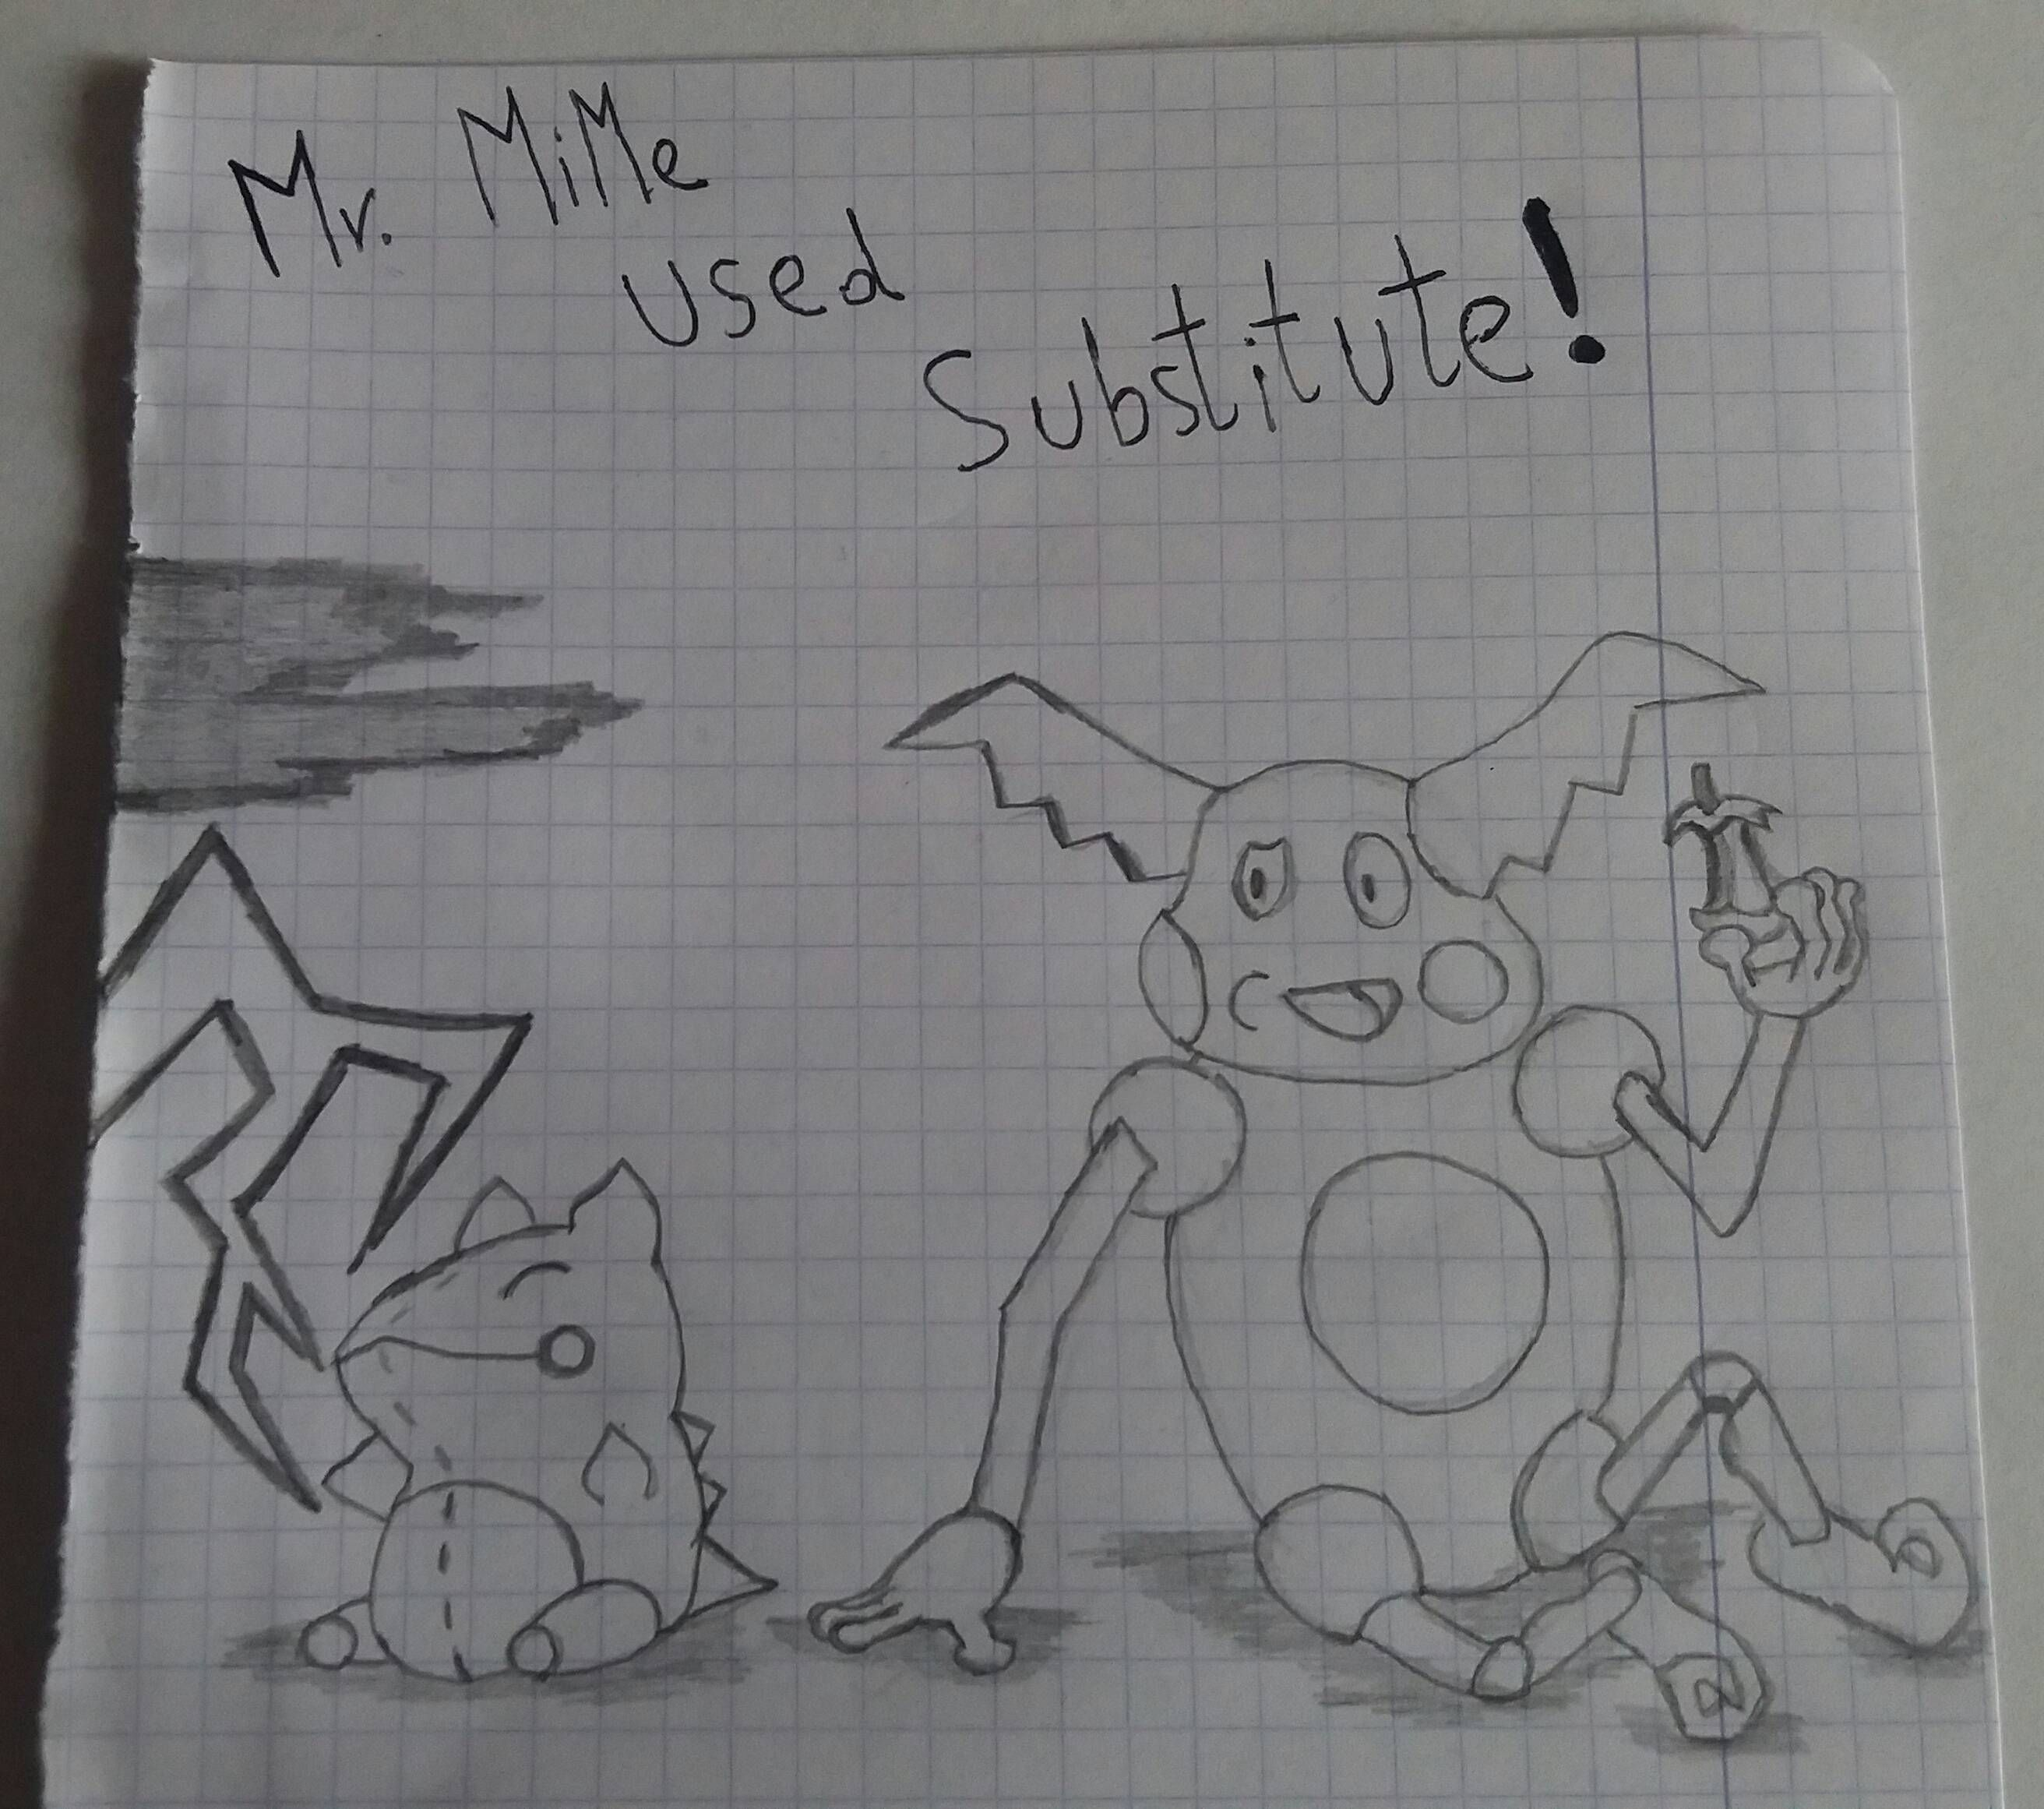 I created a sketch of one of my favourite strategies